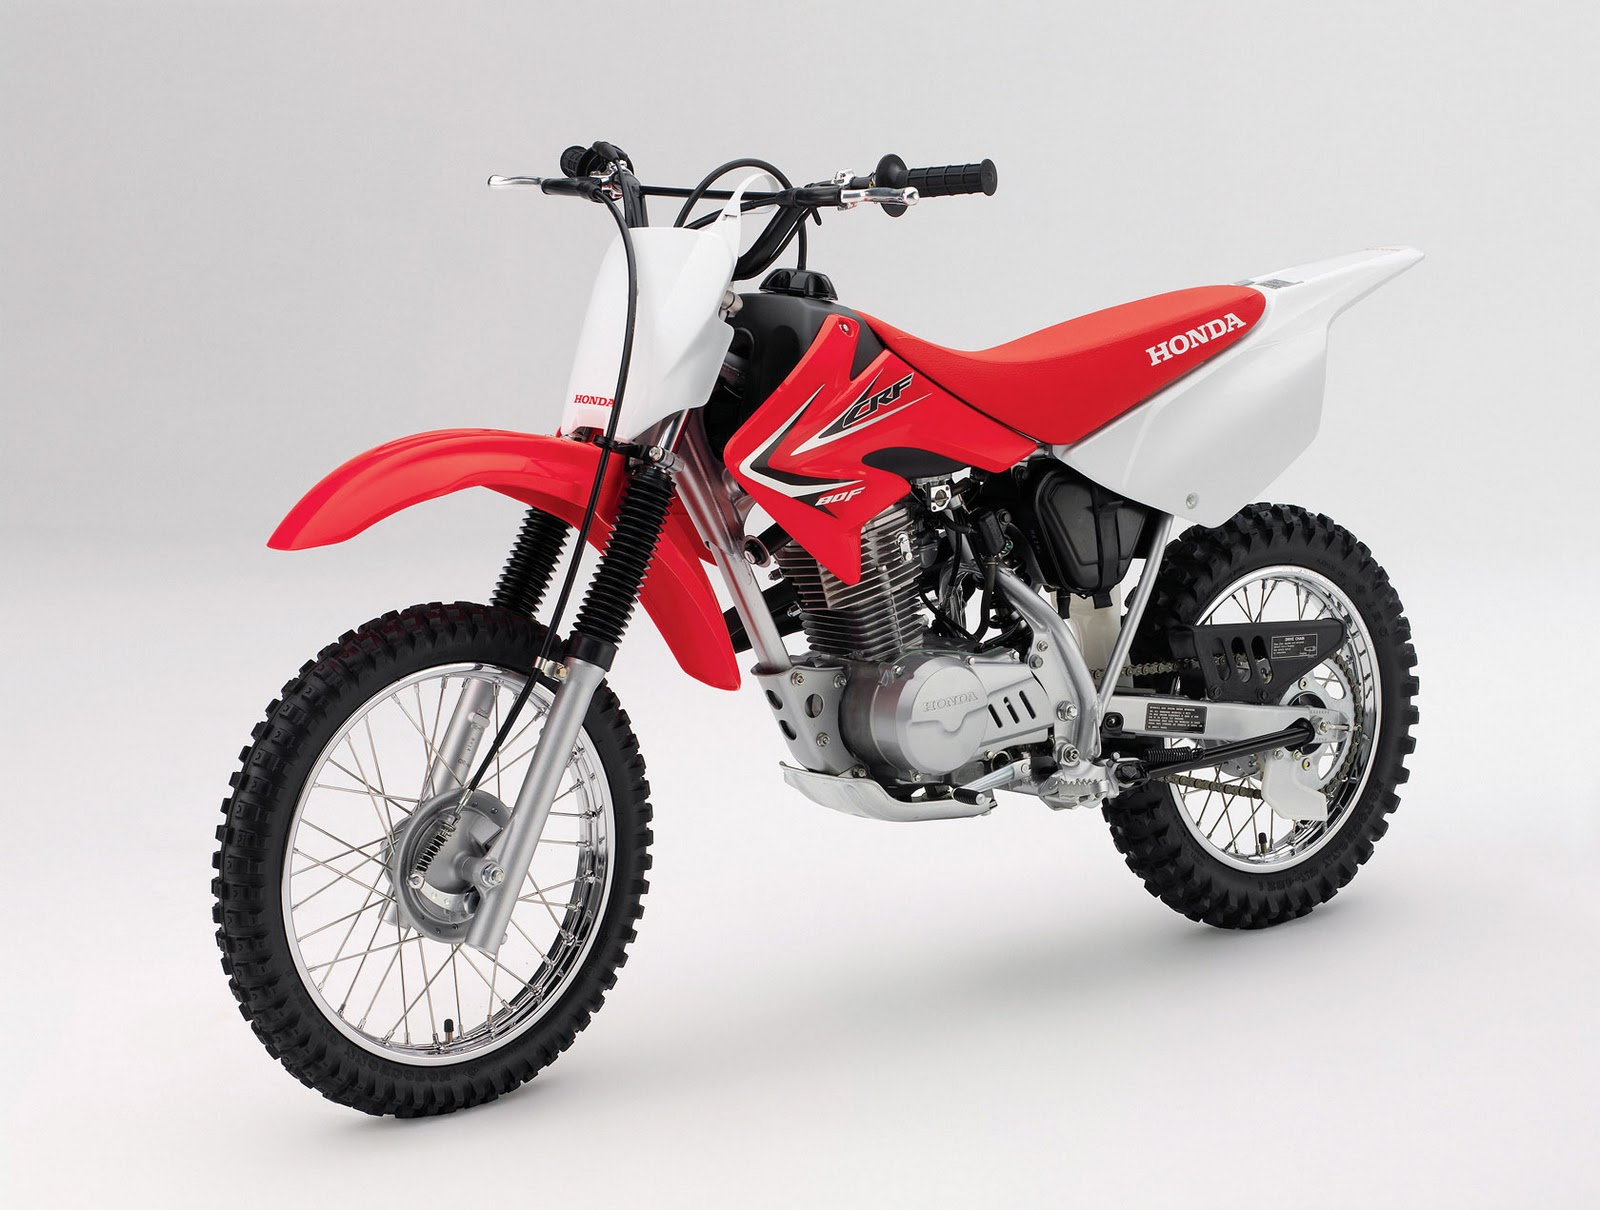 motorcycle pictures honda crf 80 f 2011. Black Bedroom Furniture Sets. Home Design Ideas